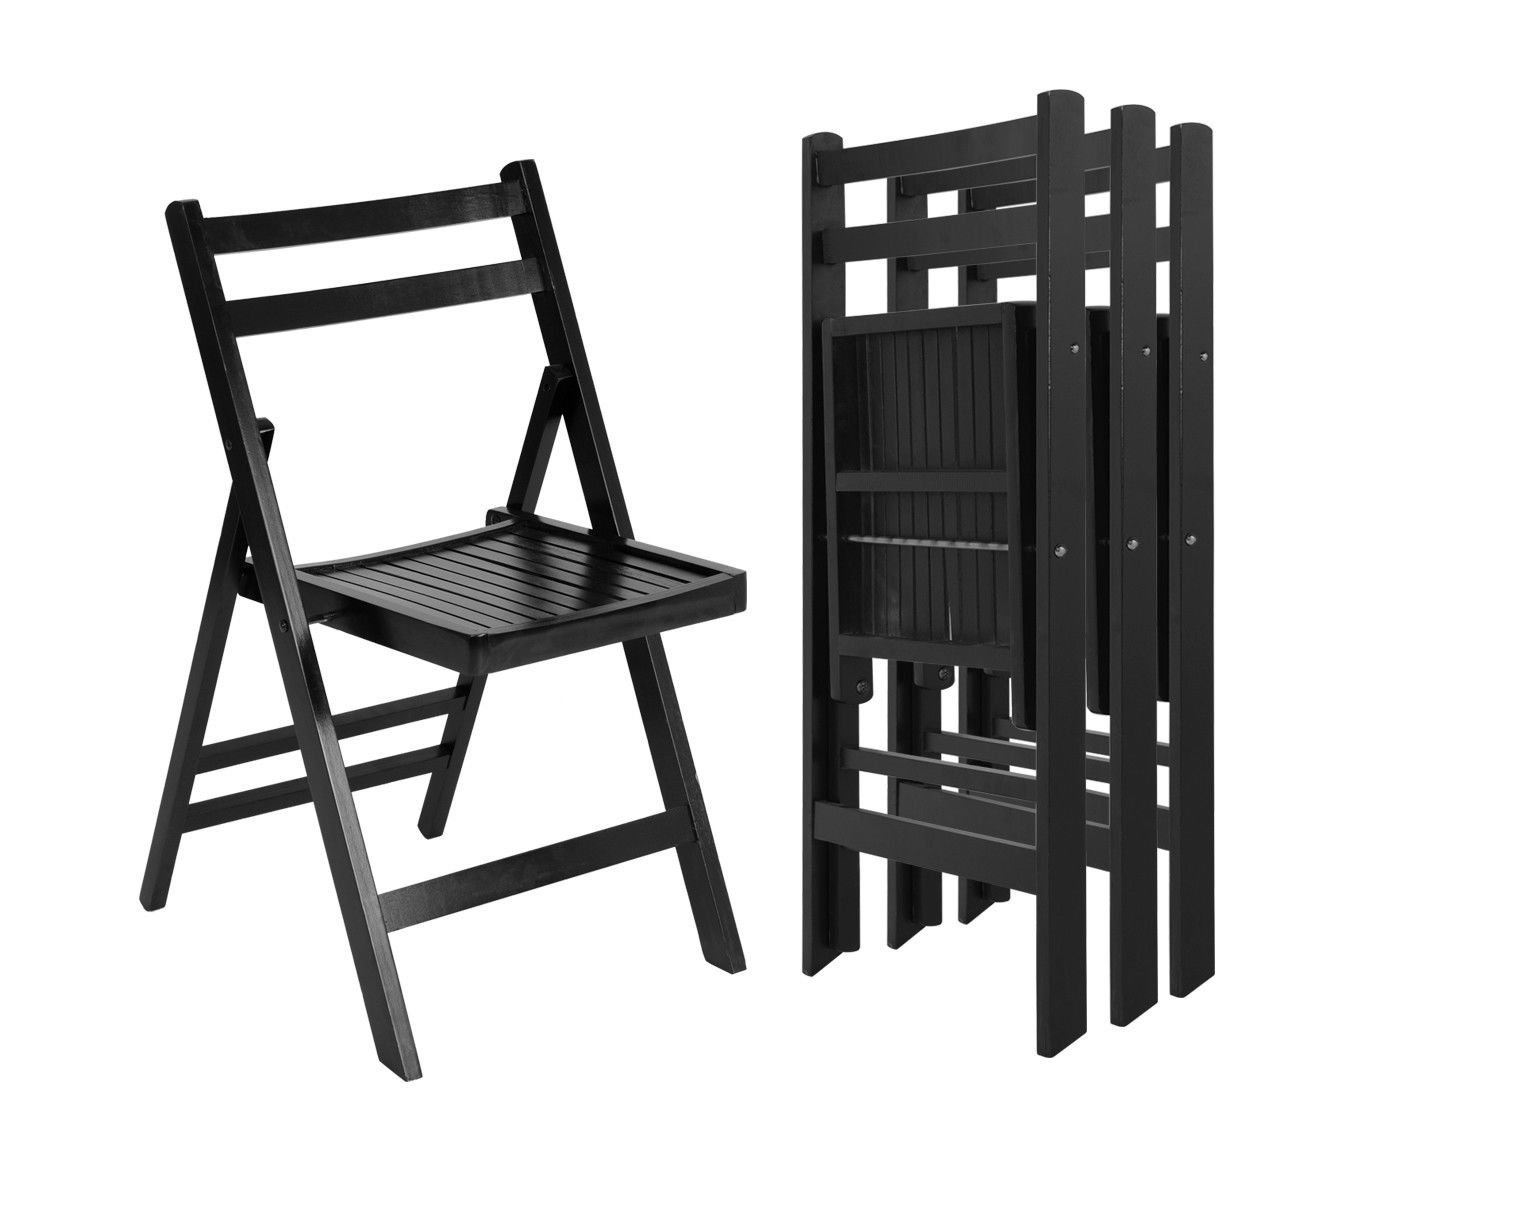 Top 10 Best Wooden Folding Chairs in 2018